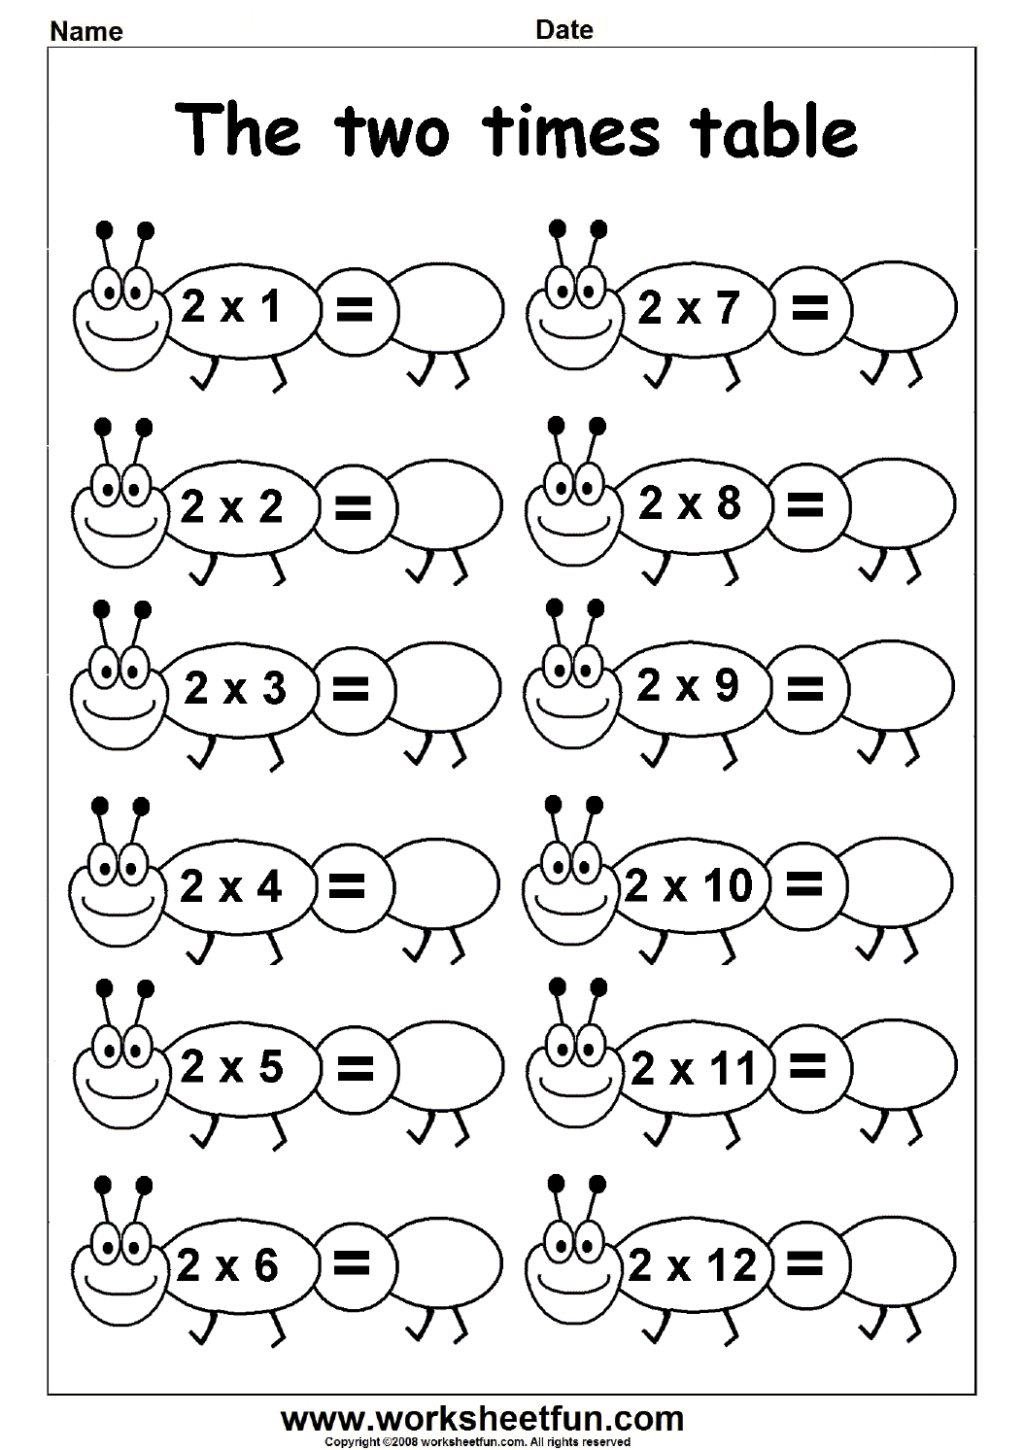 Halloween Worksheets For 6th Grade Math